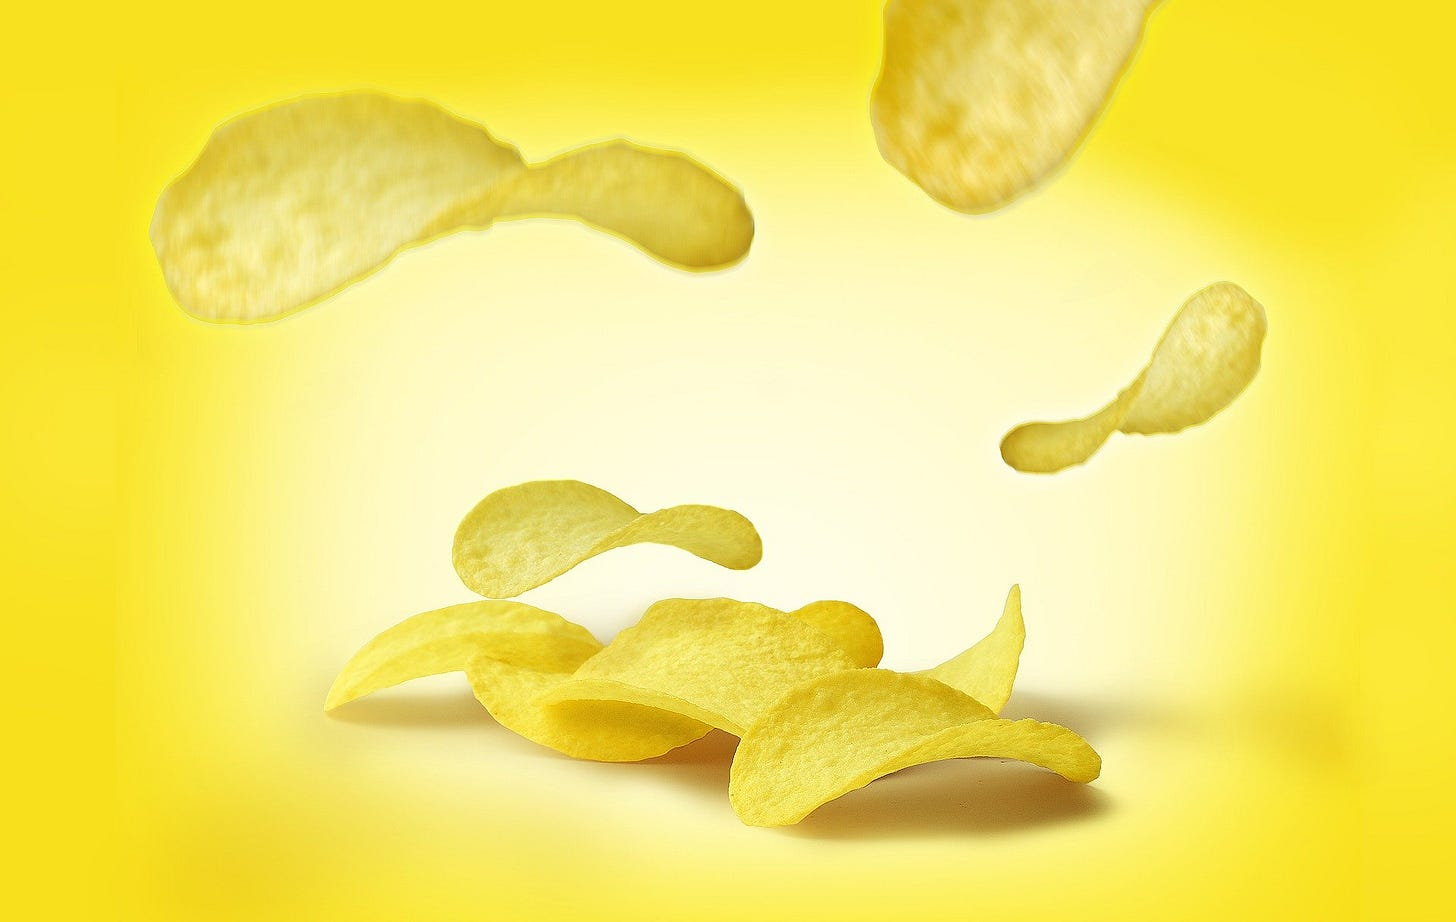 Chips or crisps. Tasty snacks might not be what they seem!